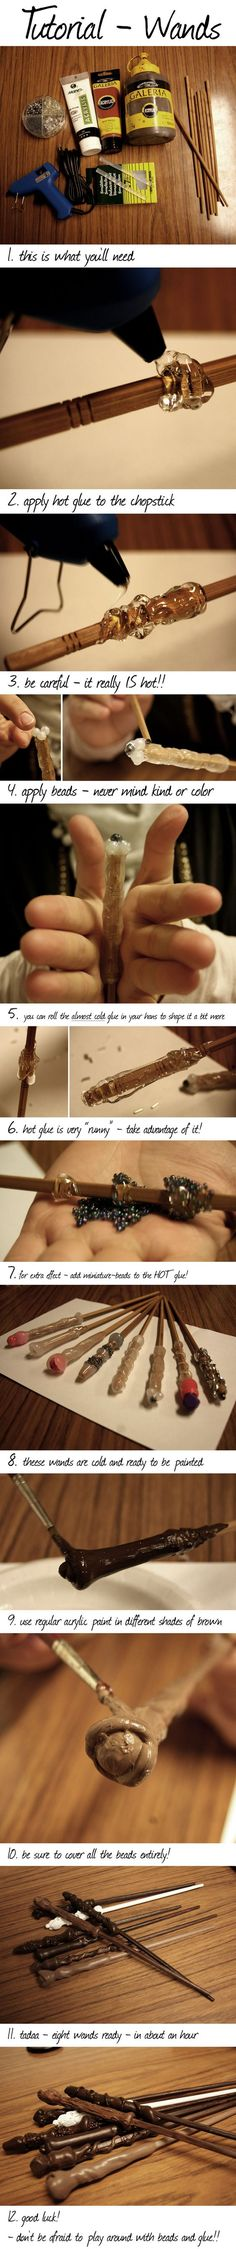 Harry Potter wands made using a hot glue gun, chopsticks and acrylic paint.  ...this is SO COOL!: